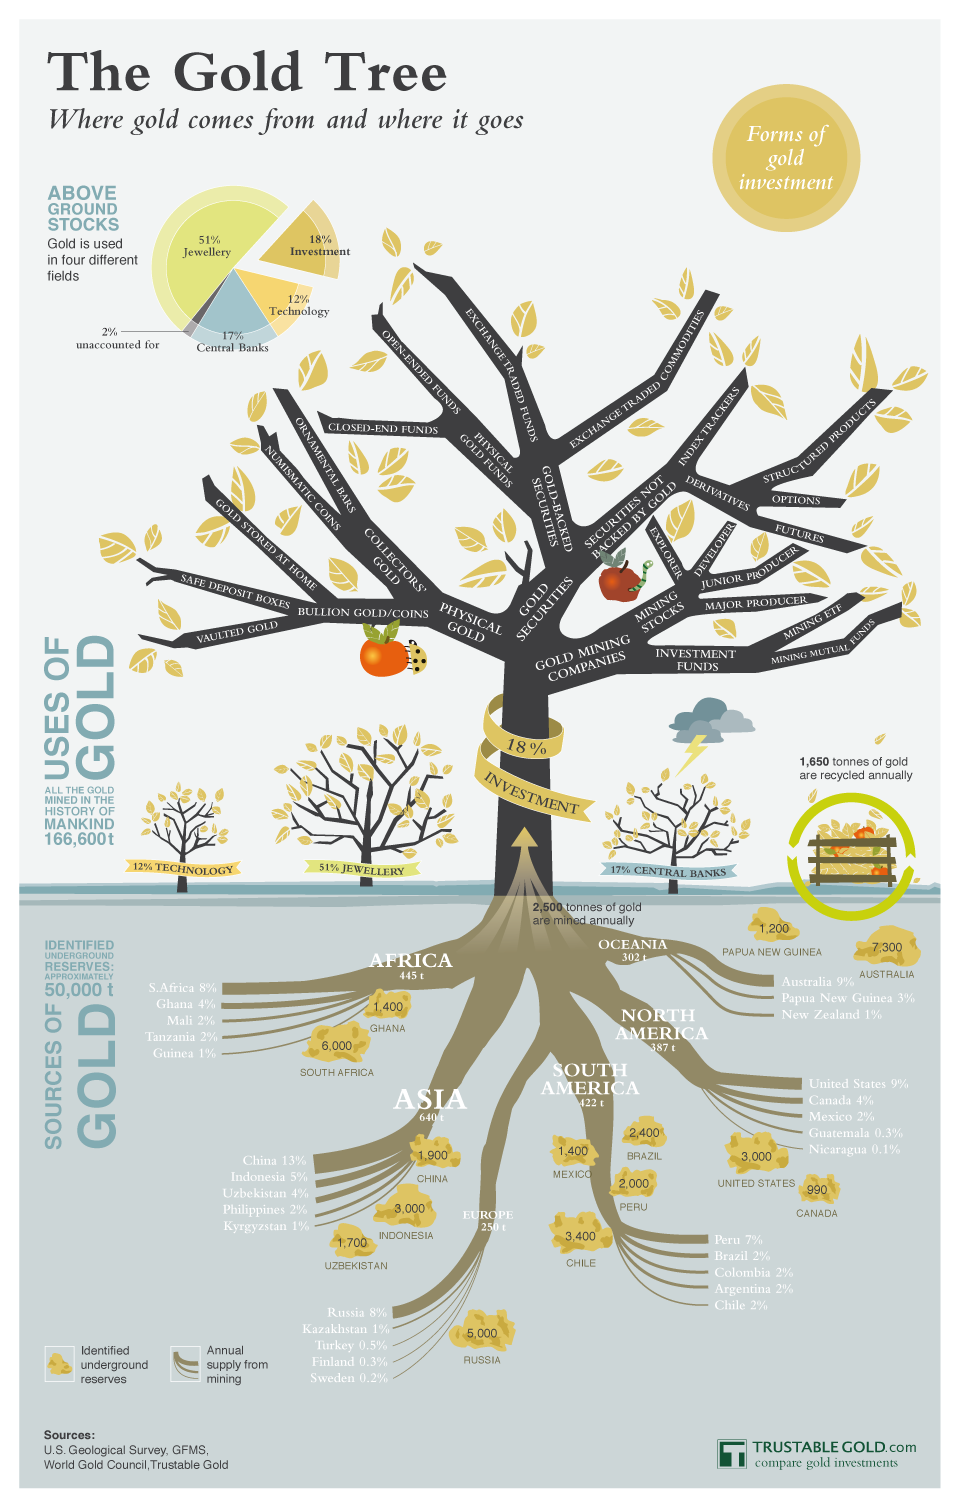 The Gold Tree: Where Does It Come From